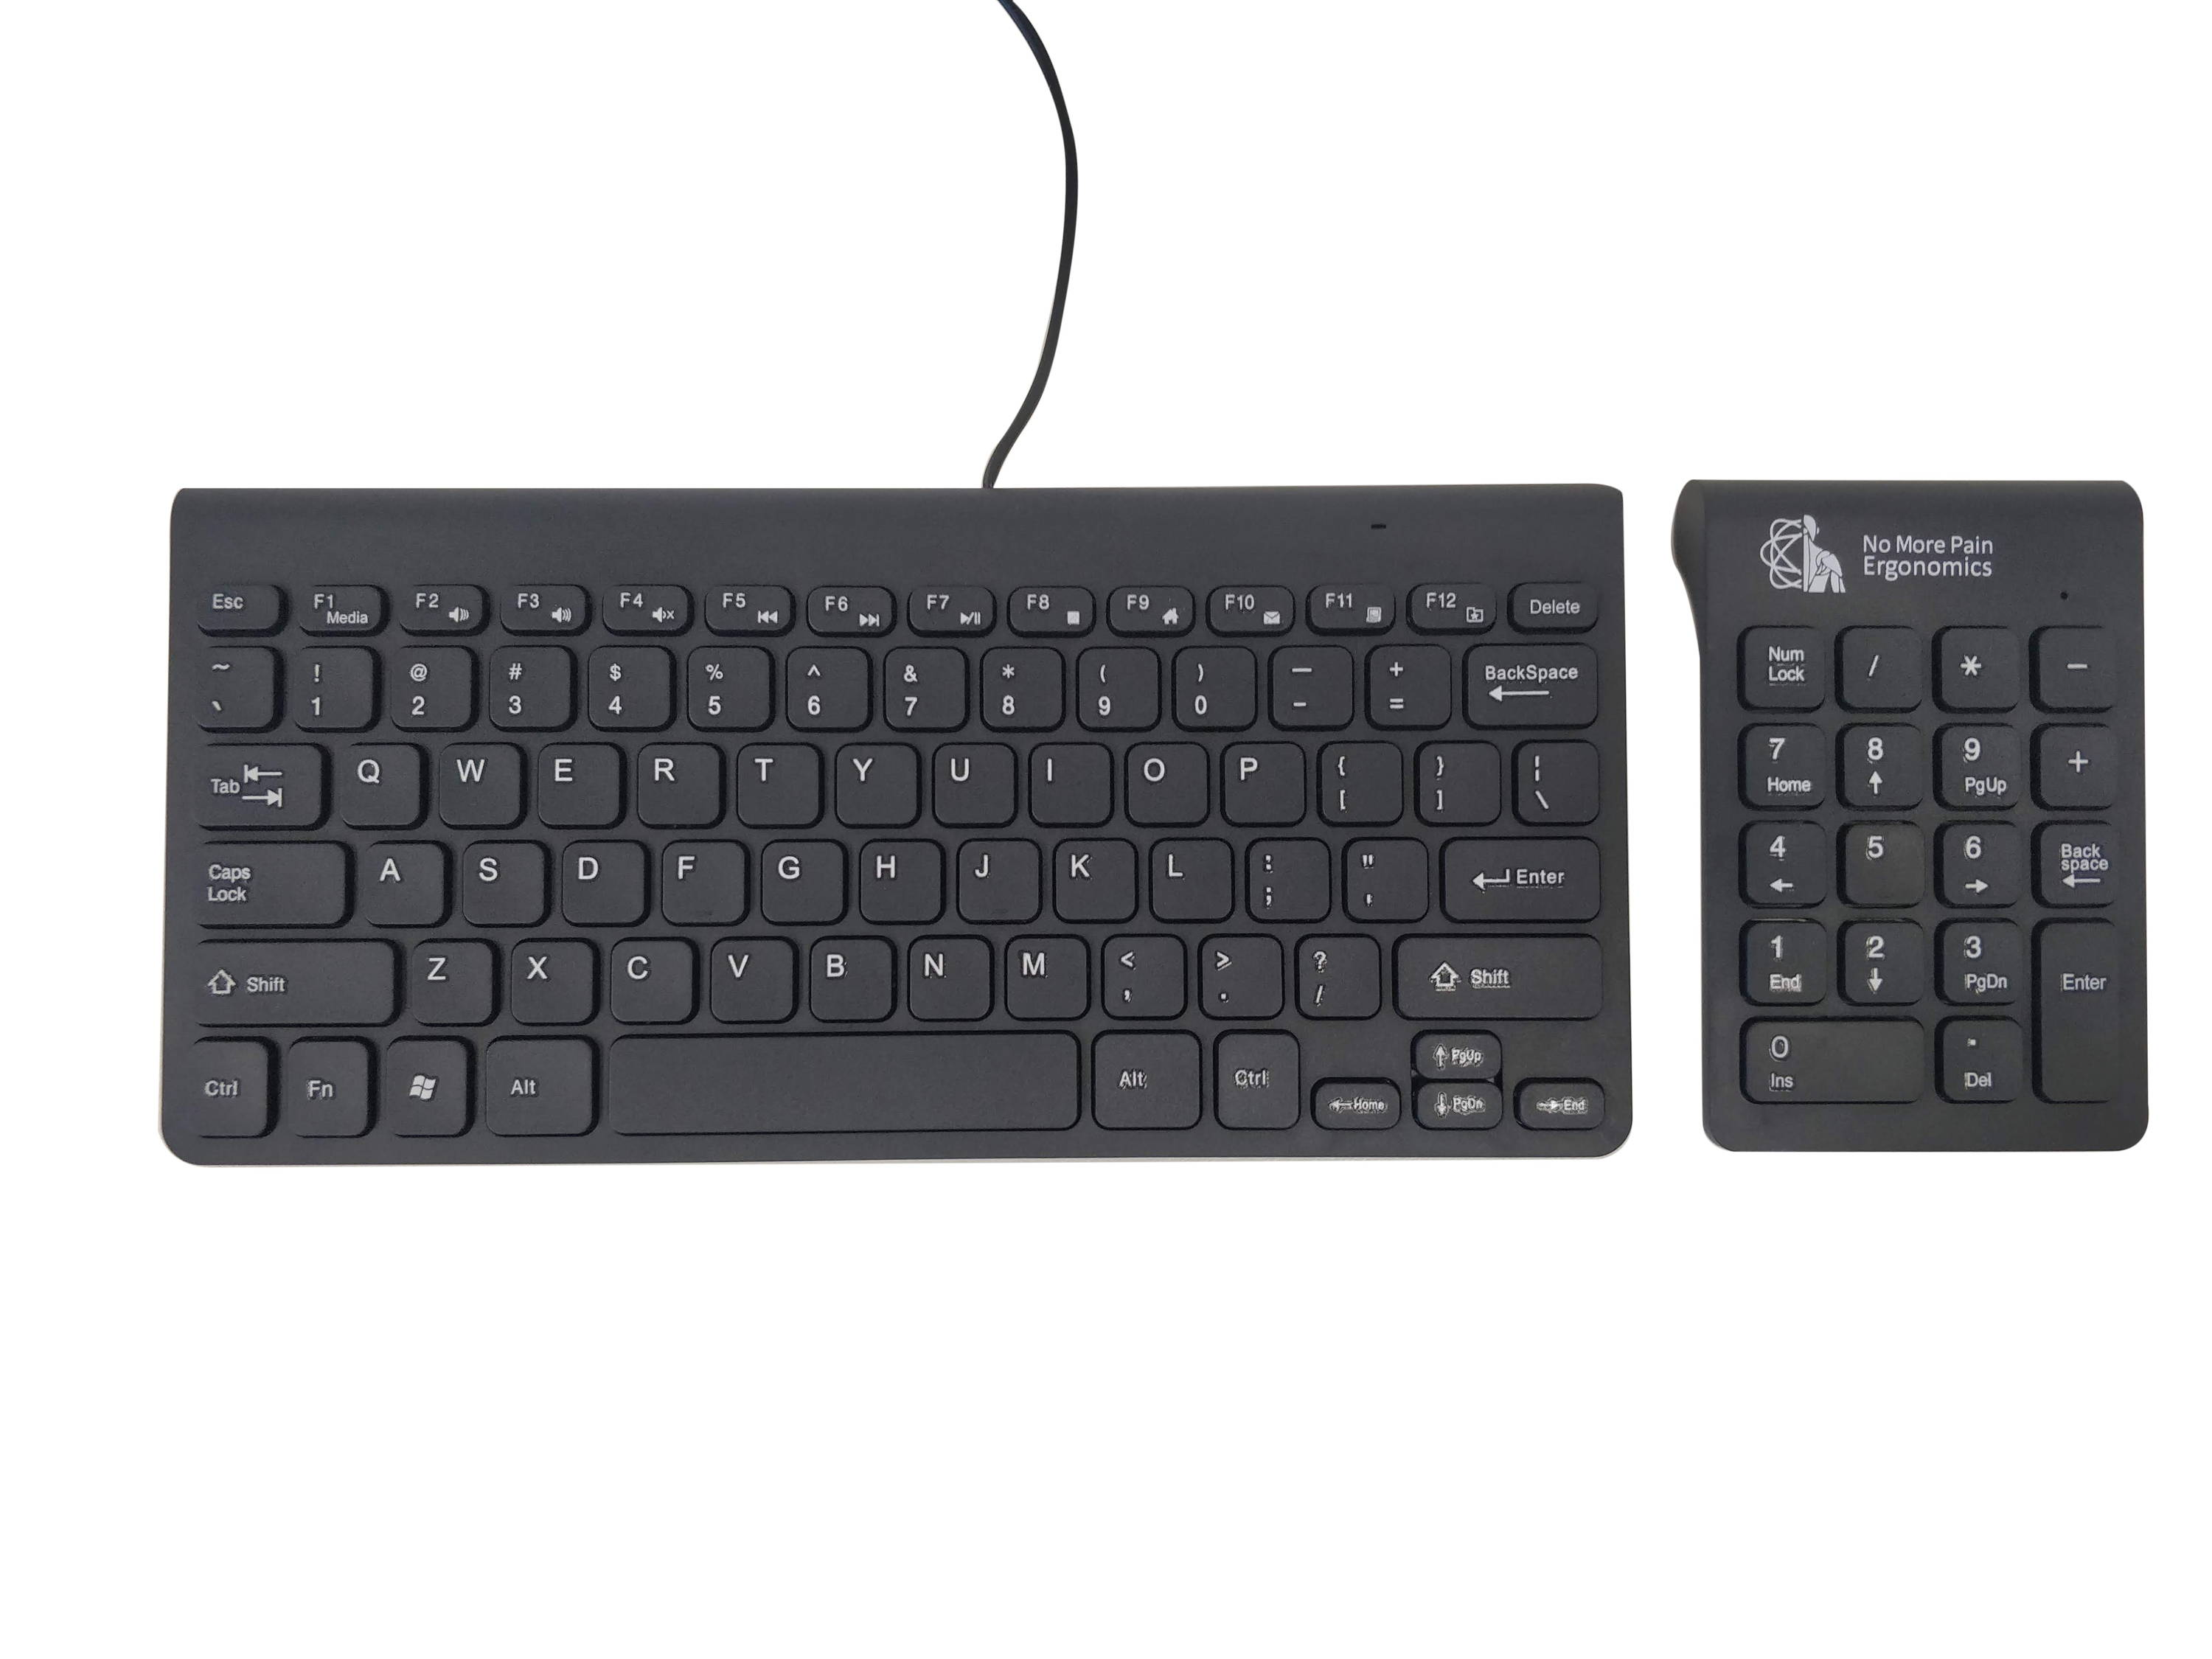 Ergonomic keyboard for carpal tunnel syndrome